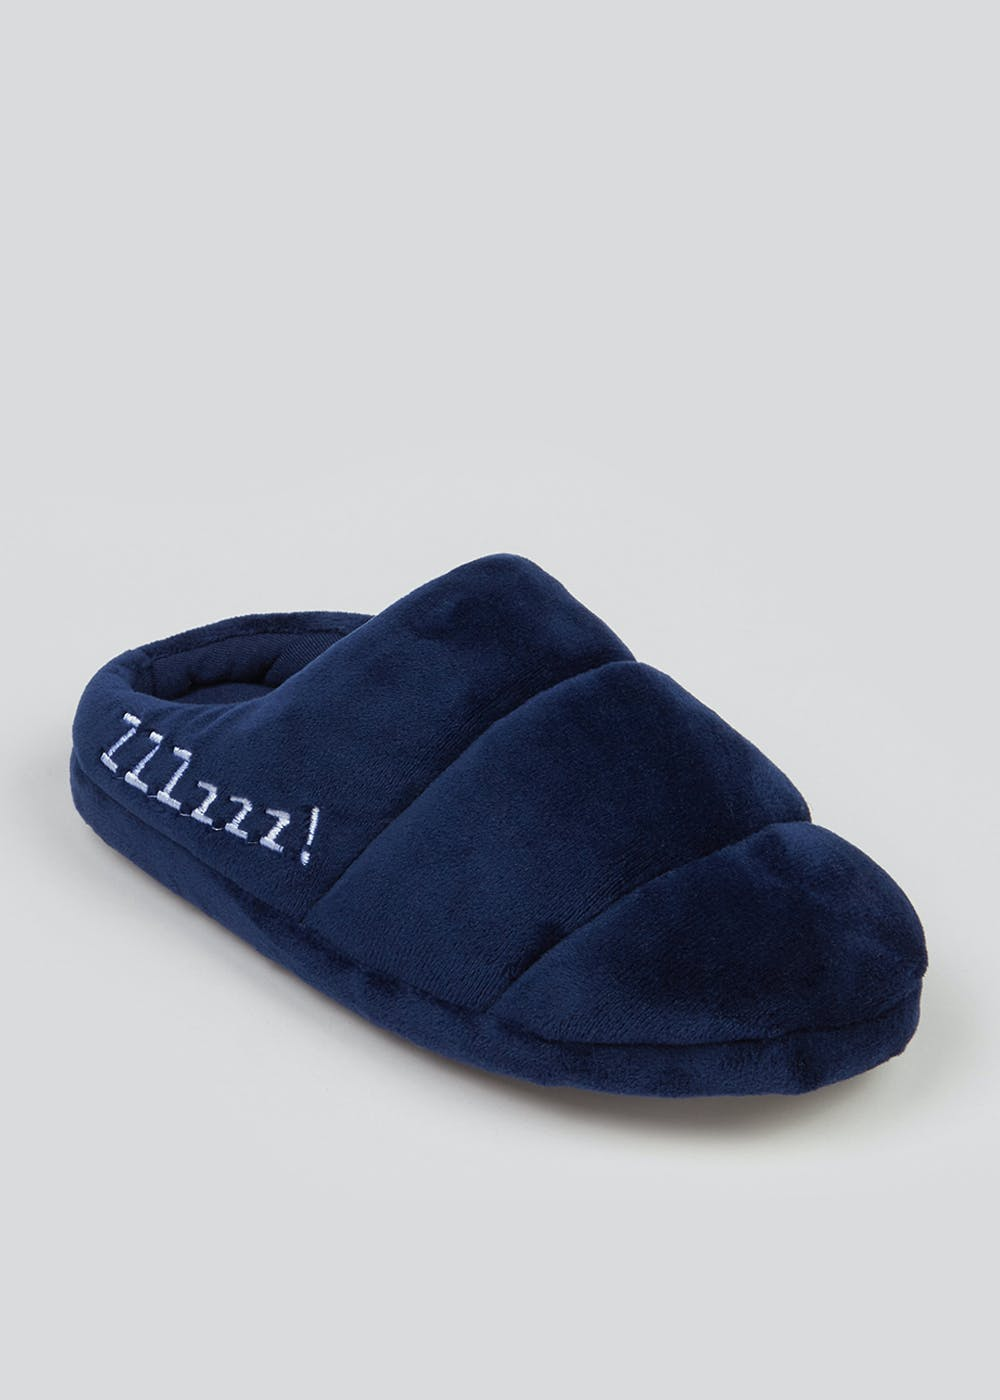 Boys Navy Mule Slippers (Younger 10-Older 6) – Navy